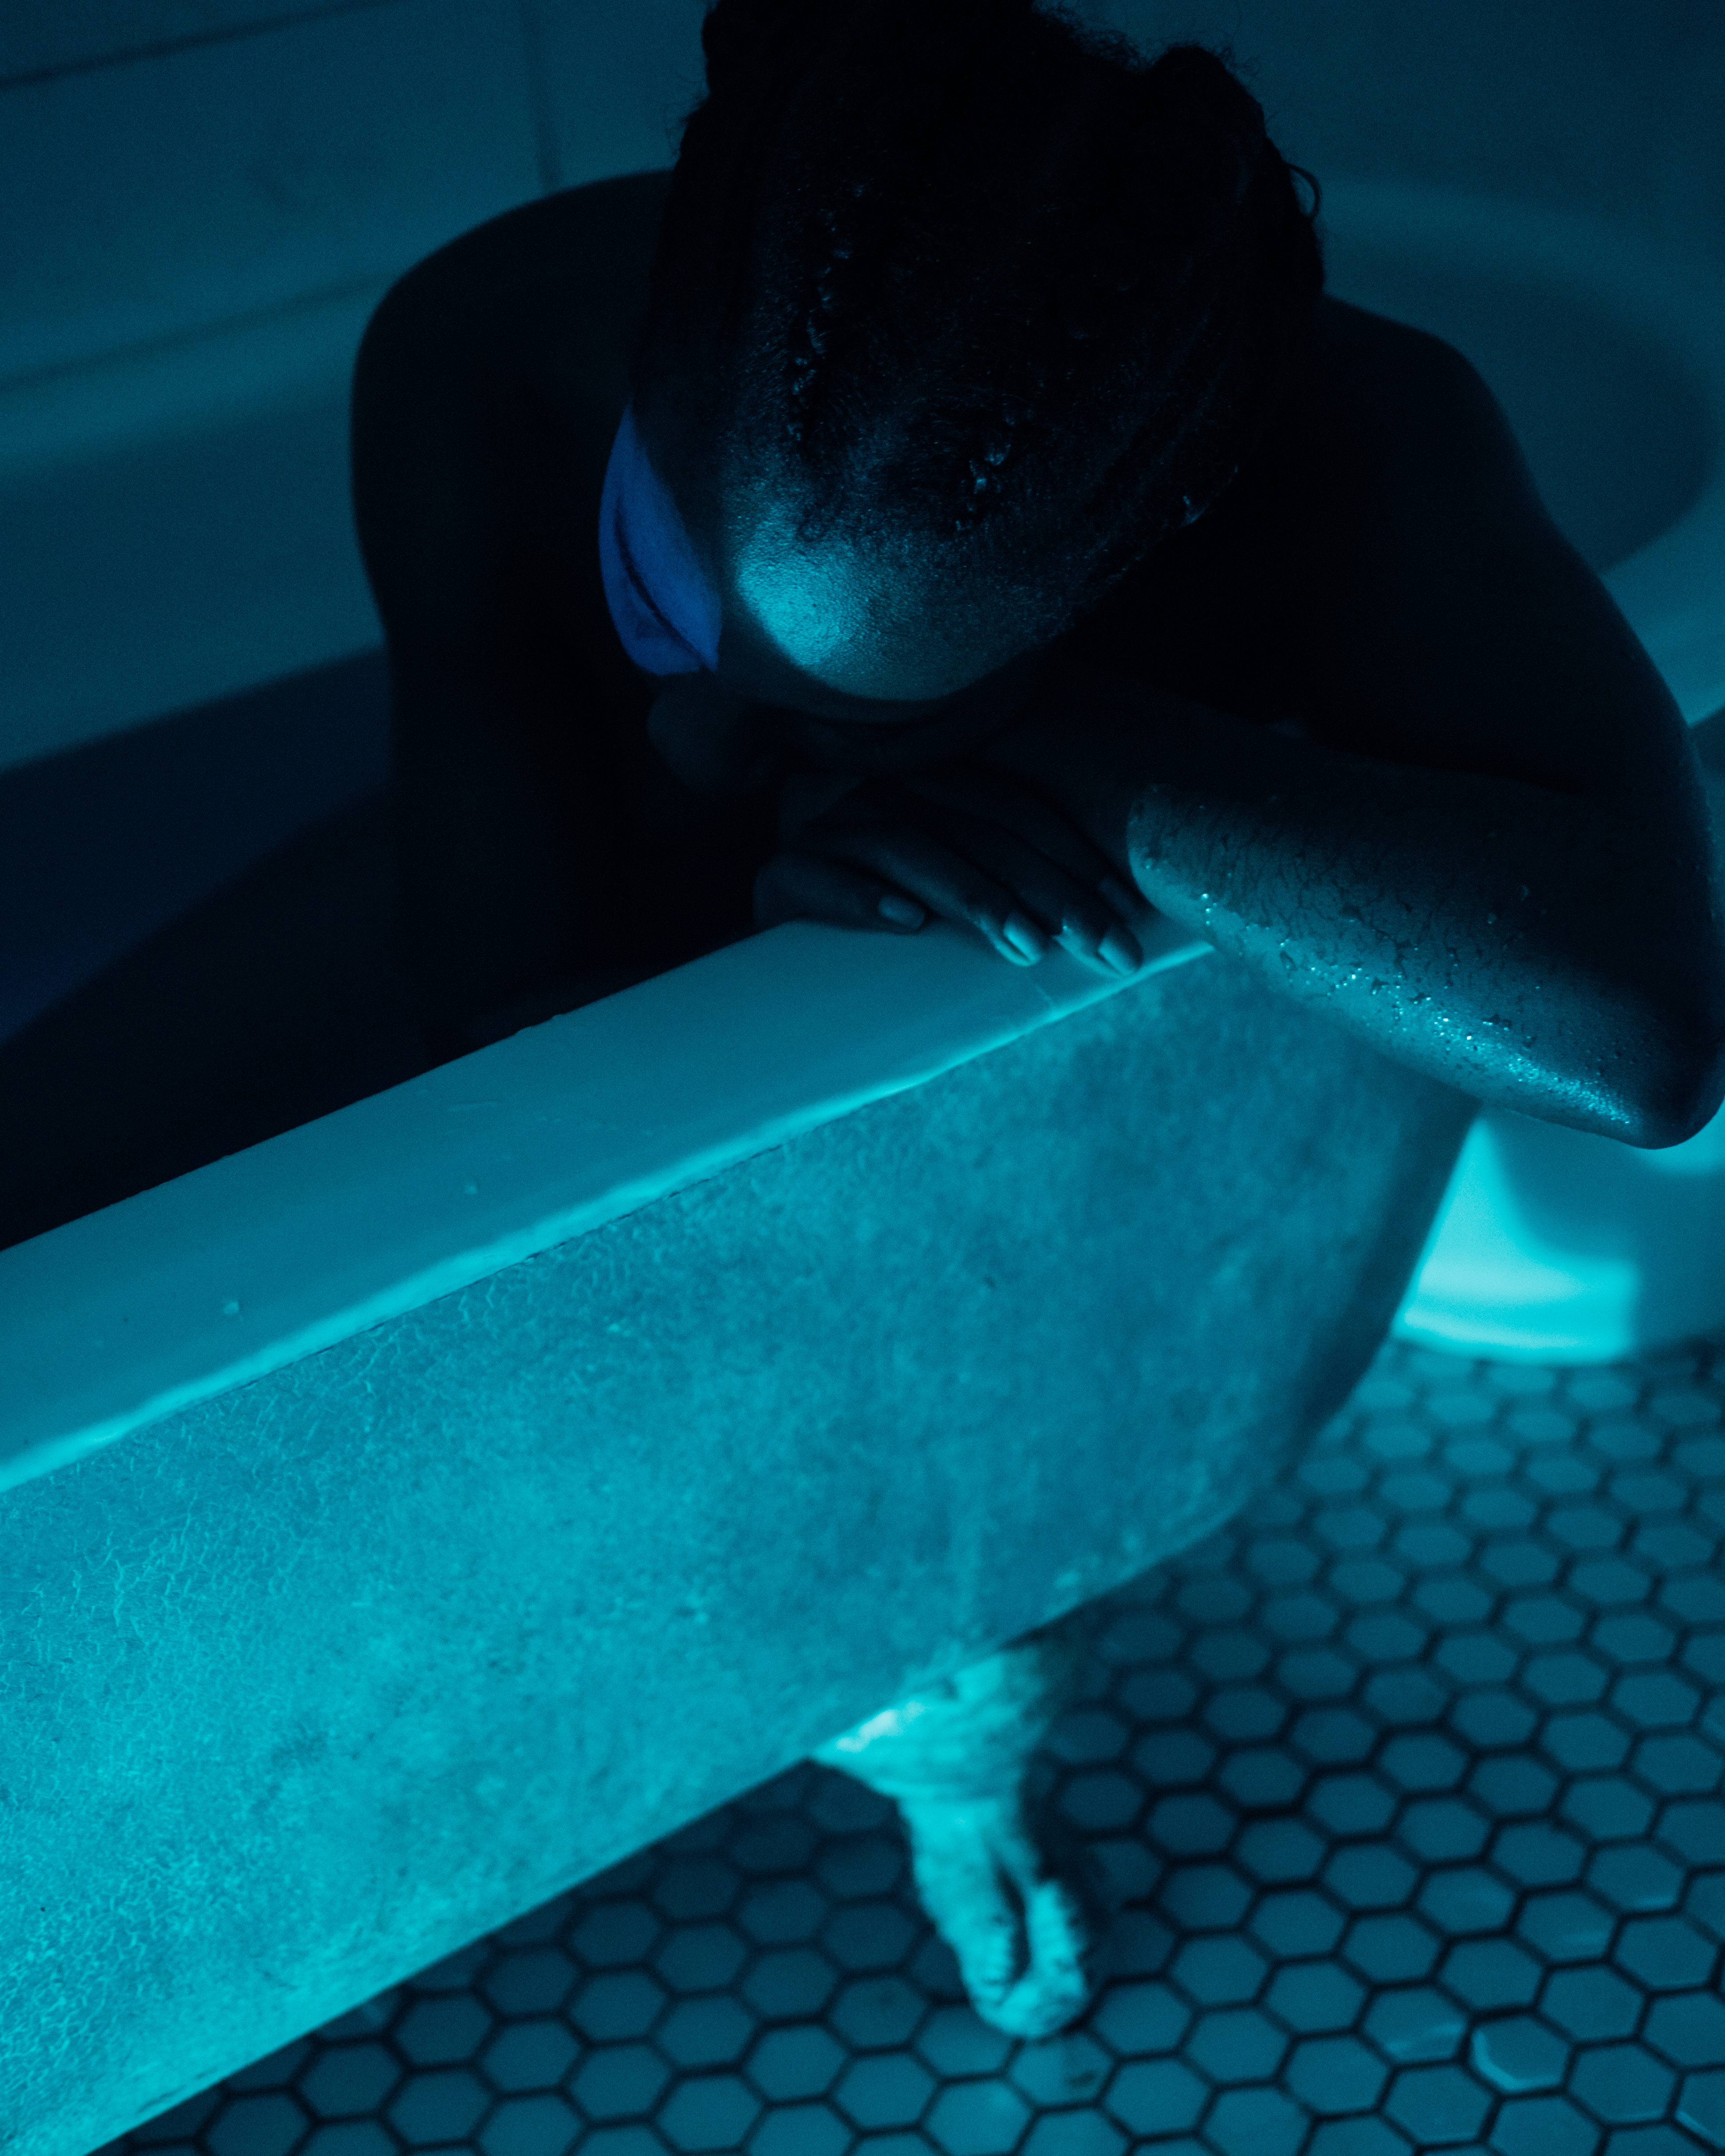 a Black woman with her hair in a cornrowed ponytail sits in a tub with her head in her hands